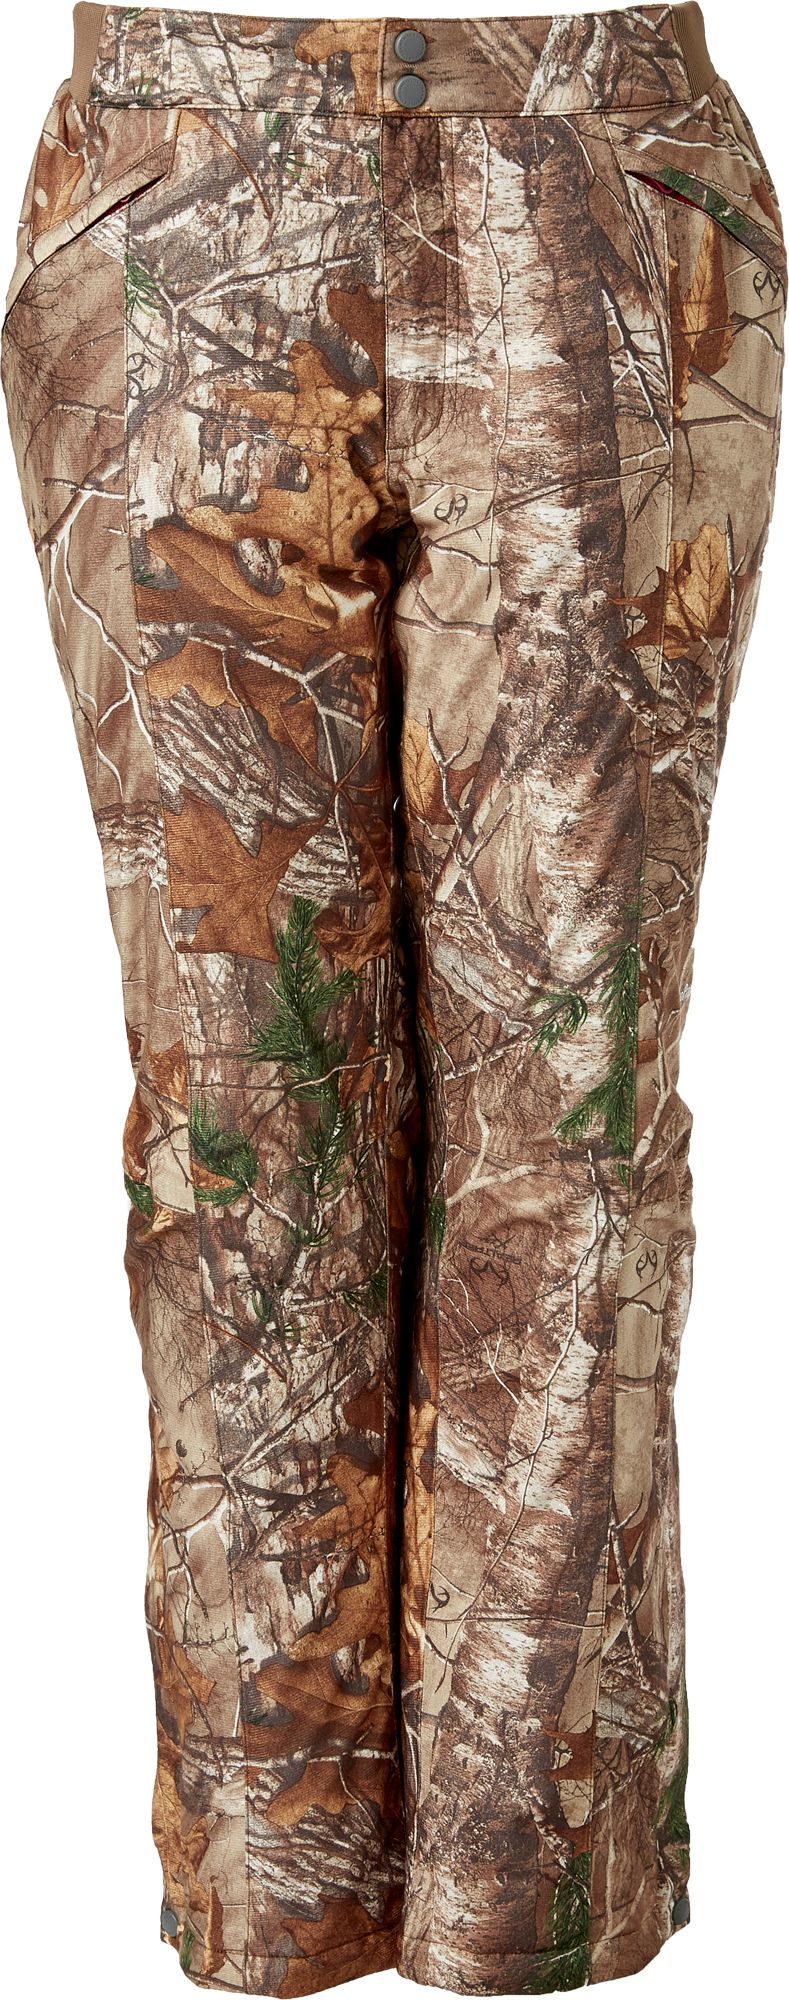 Field & Stream Women's True Pursuit Insulated Hunting Pants, Size: Medium, Brown thumbnail